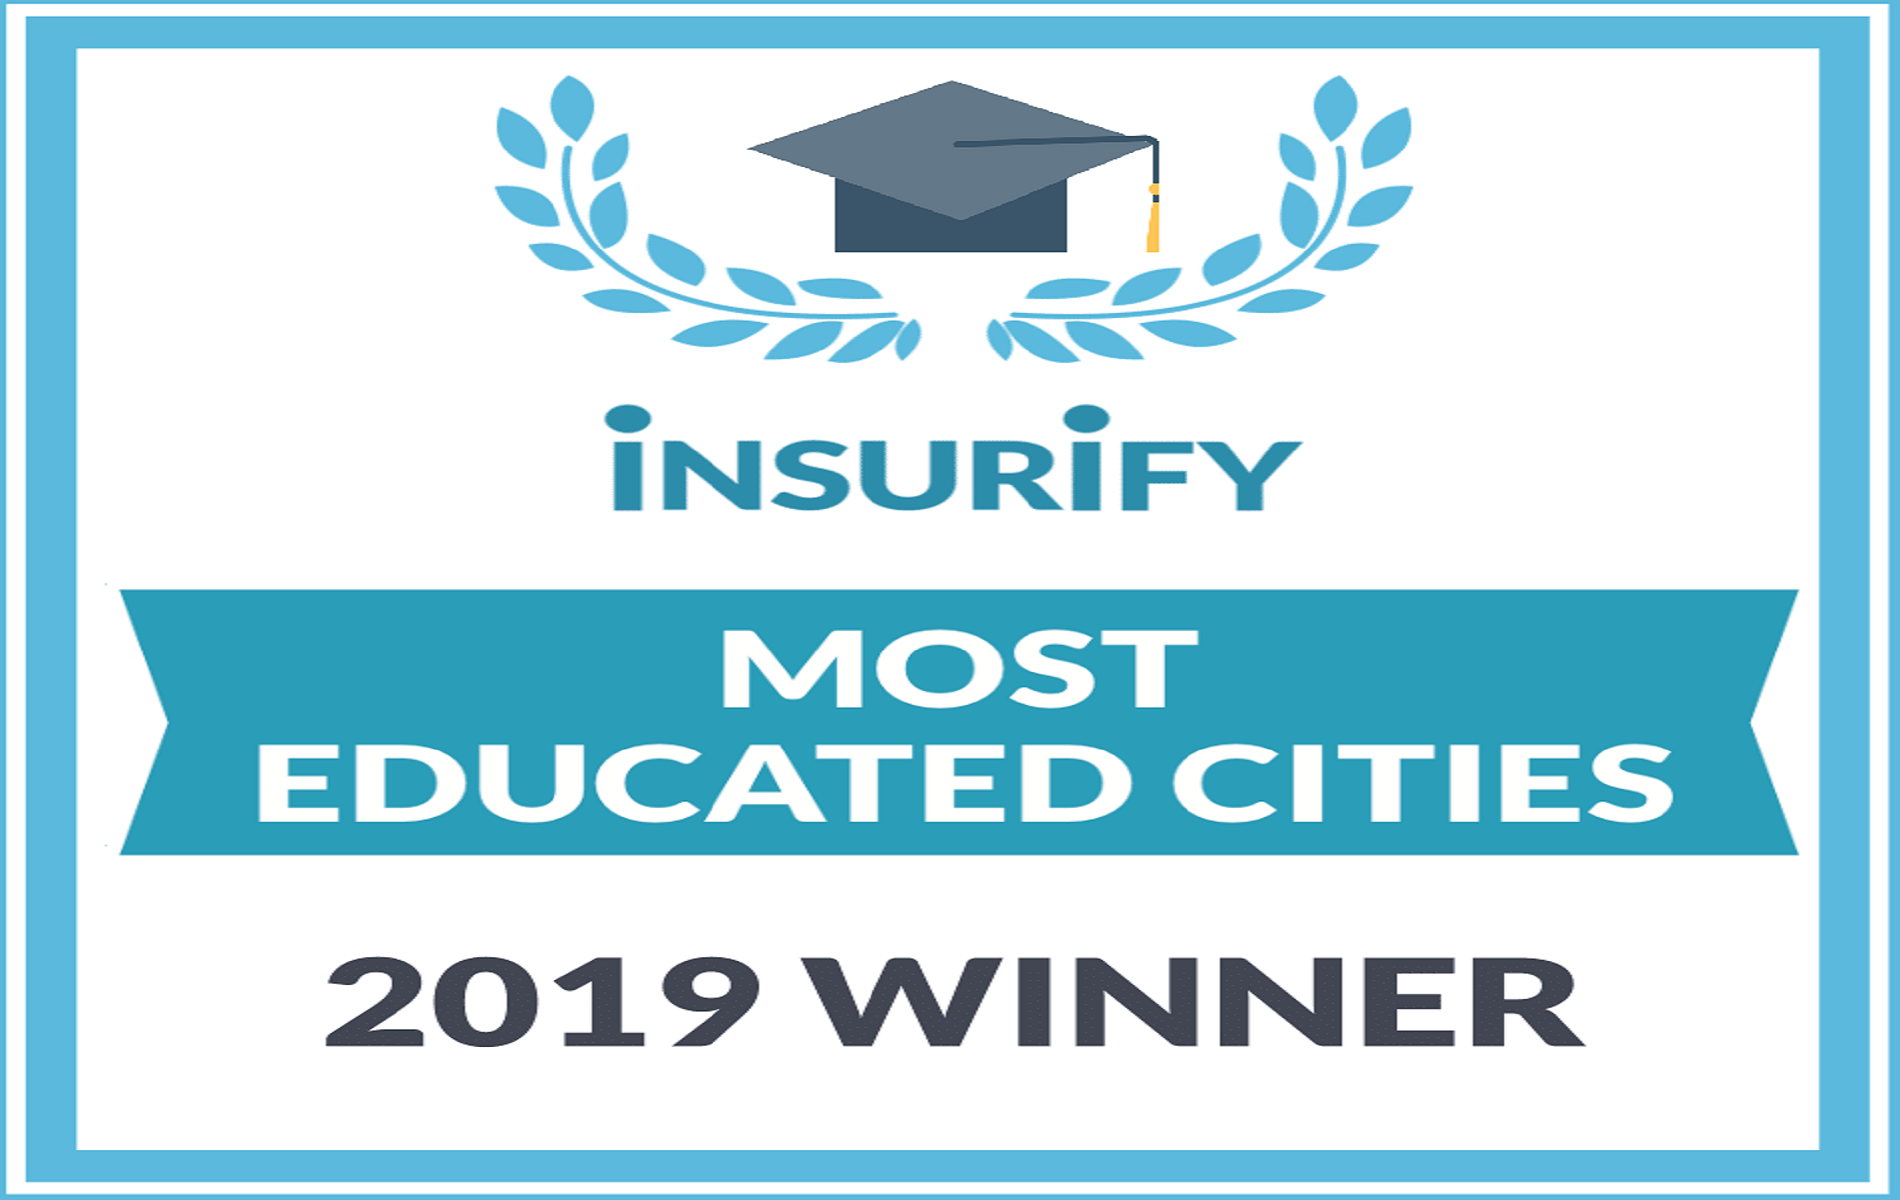 Most-Educated-Cities-2019-Winners-Website-Badge